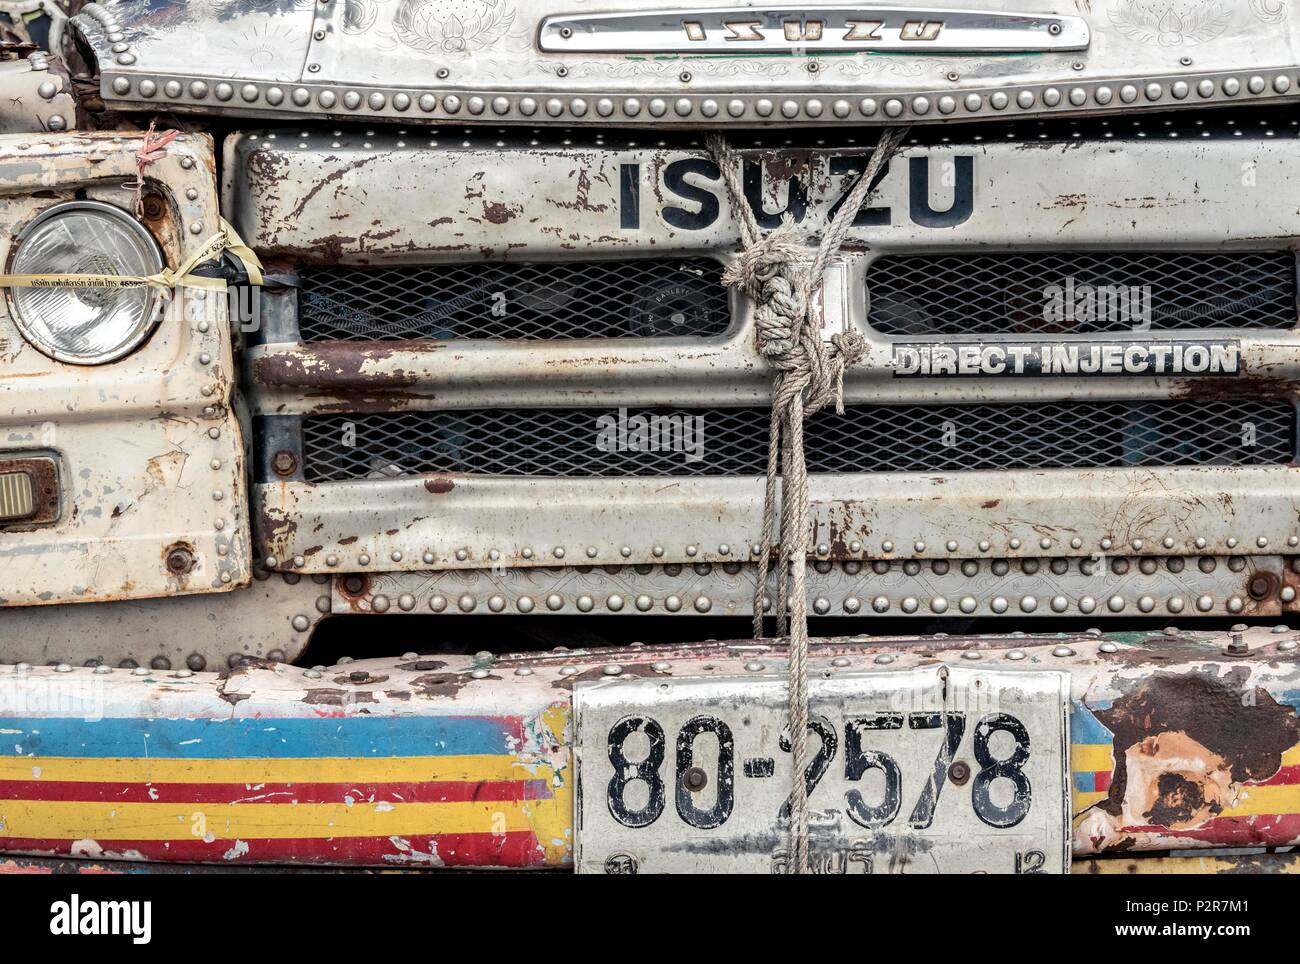 Broken Wire Rope Stock Photos & Broken Wire Rope Stock Images - Alamy